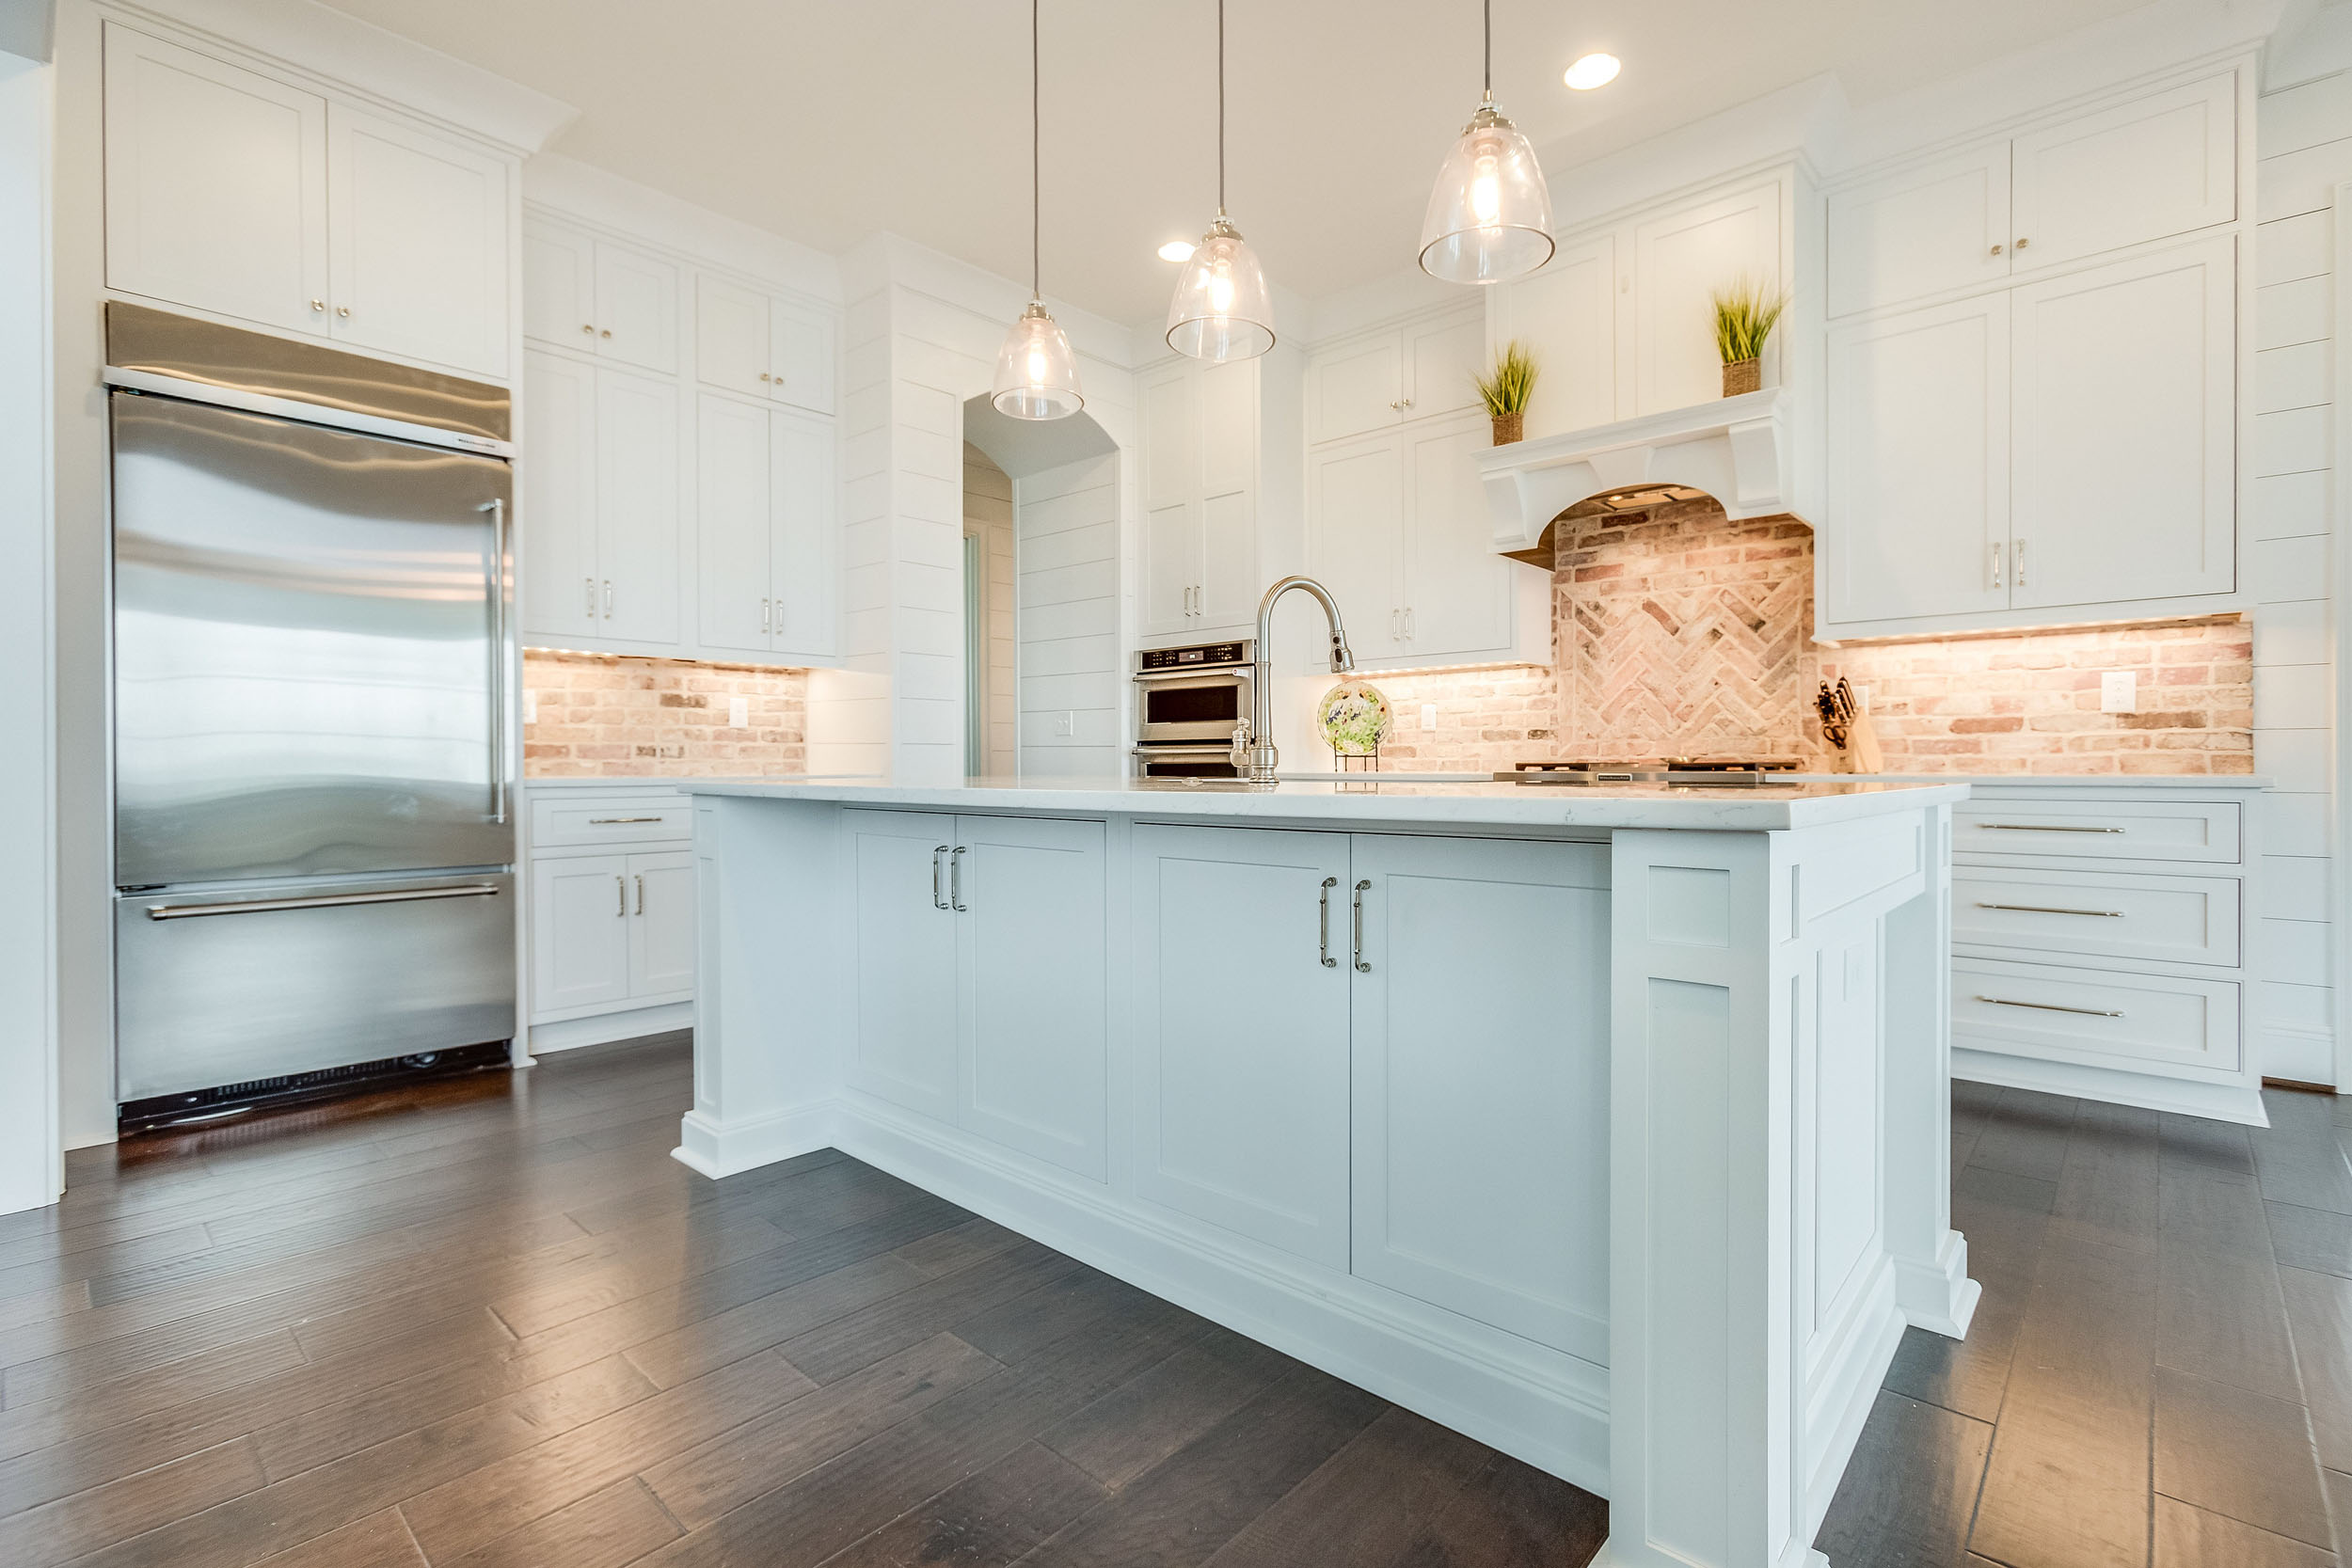 A kitchen island with a Kohler Whitehaven apron front sink.